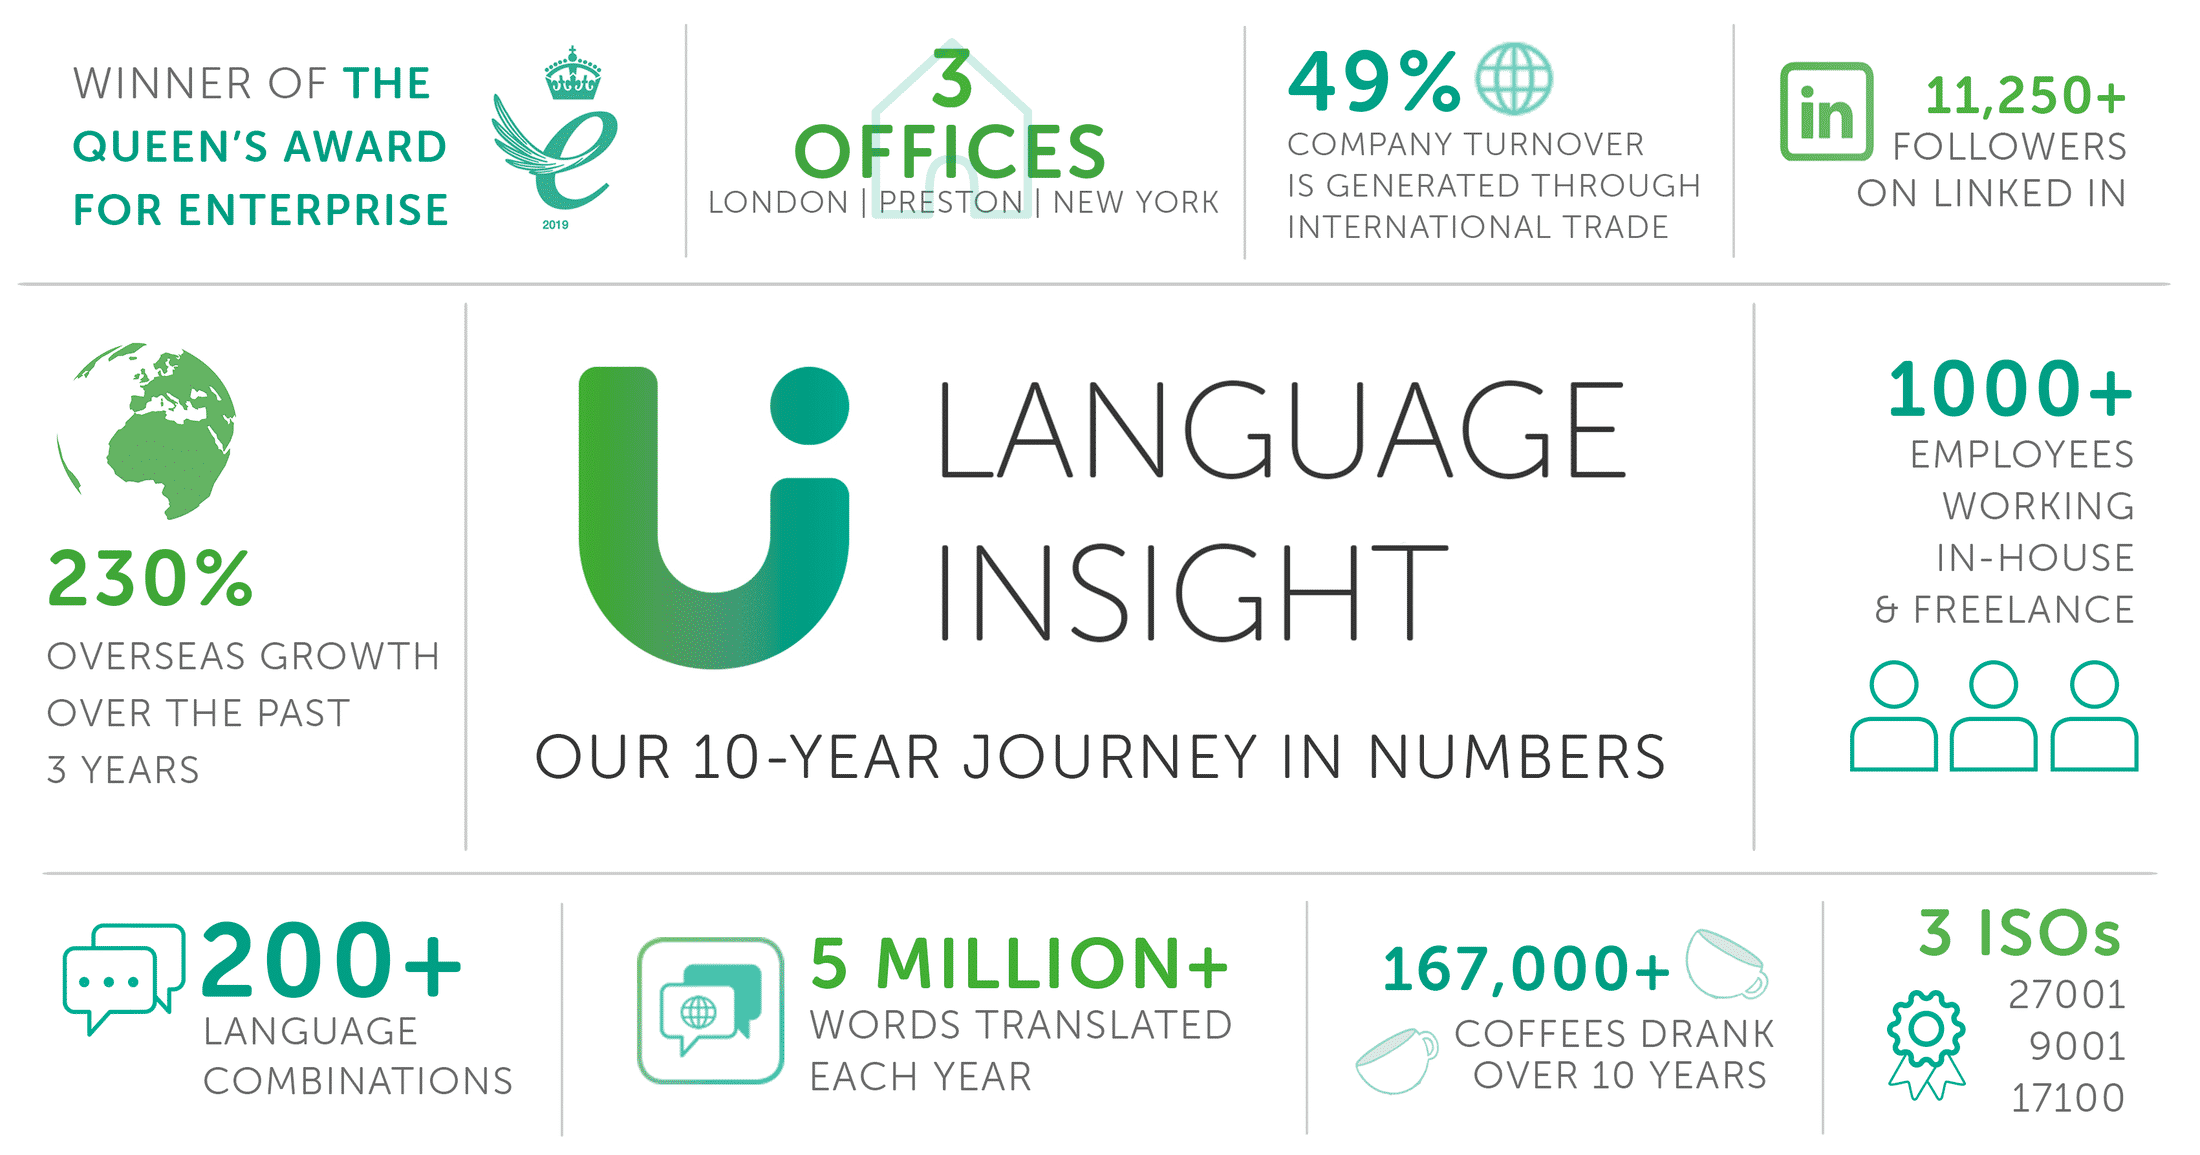 Language Insight's 10-year journey in numbers